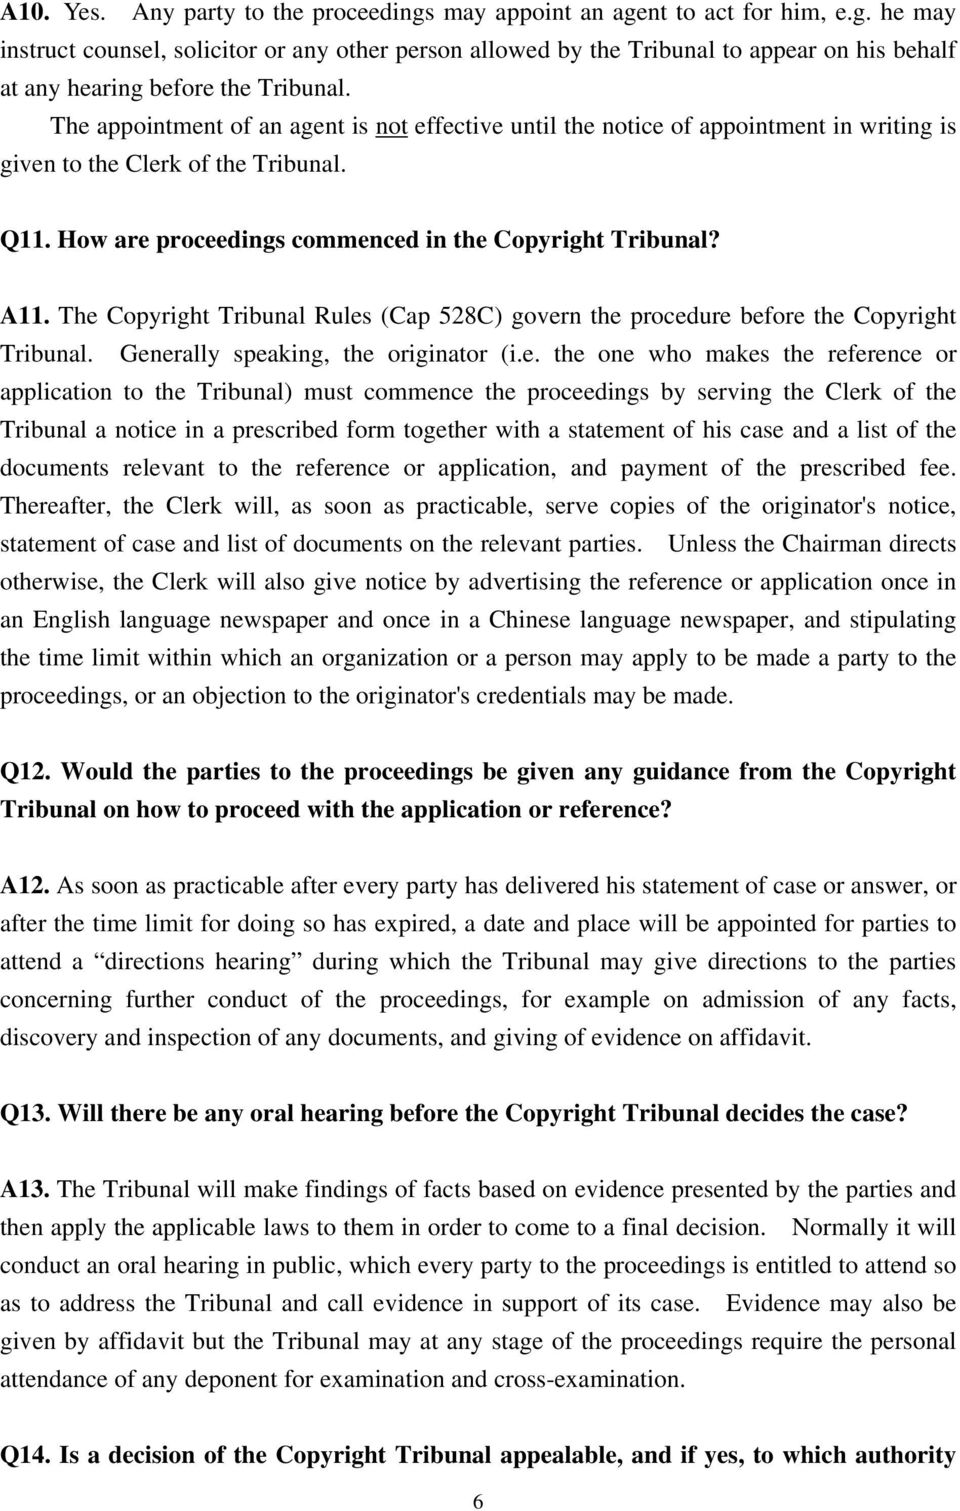 The Copyright Tribunal Rules (Cap 528C) govern the procedure before the Copyright Tribunal. Generally speaking, the originator (i.e. the one who makes the reference or application to the Tribunal)